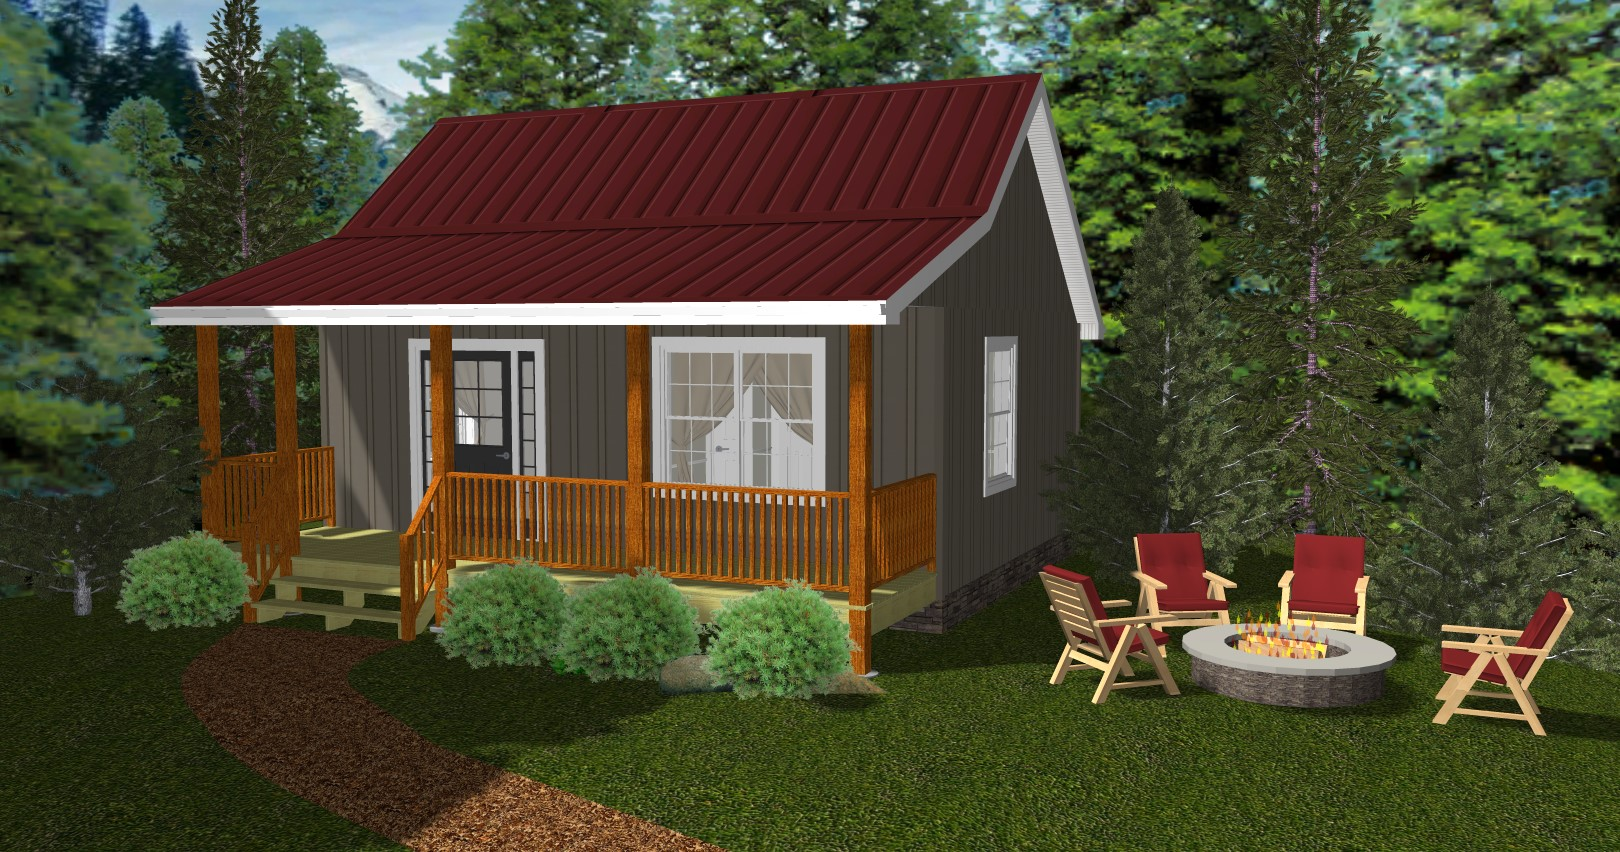 Understanding Tiny House Building Factors on fall yard designs, pretty yard designs, home yard designs, small yard garden designs, no lawn front yard designs, florida front yard landscape designs, front yard sidewalk designs, narrow yard designs, large yard designs, tiny house design, small yard ideas landscaping designs, tiny apartment yards, front yard courtyard designs, northwest front yard landscaping designs, small bathrooms designs, vertical garden designs, tiny clock movements, container garden designs, yard and garden designs, front yard planter designs,